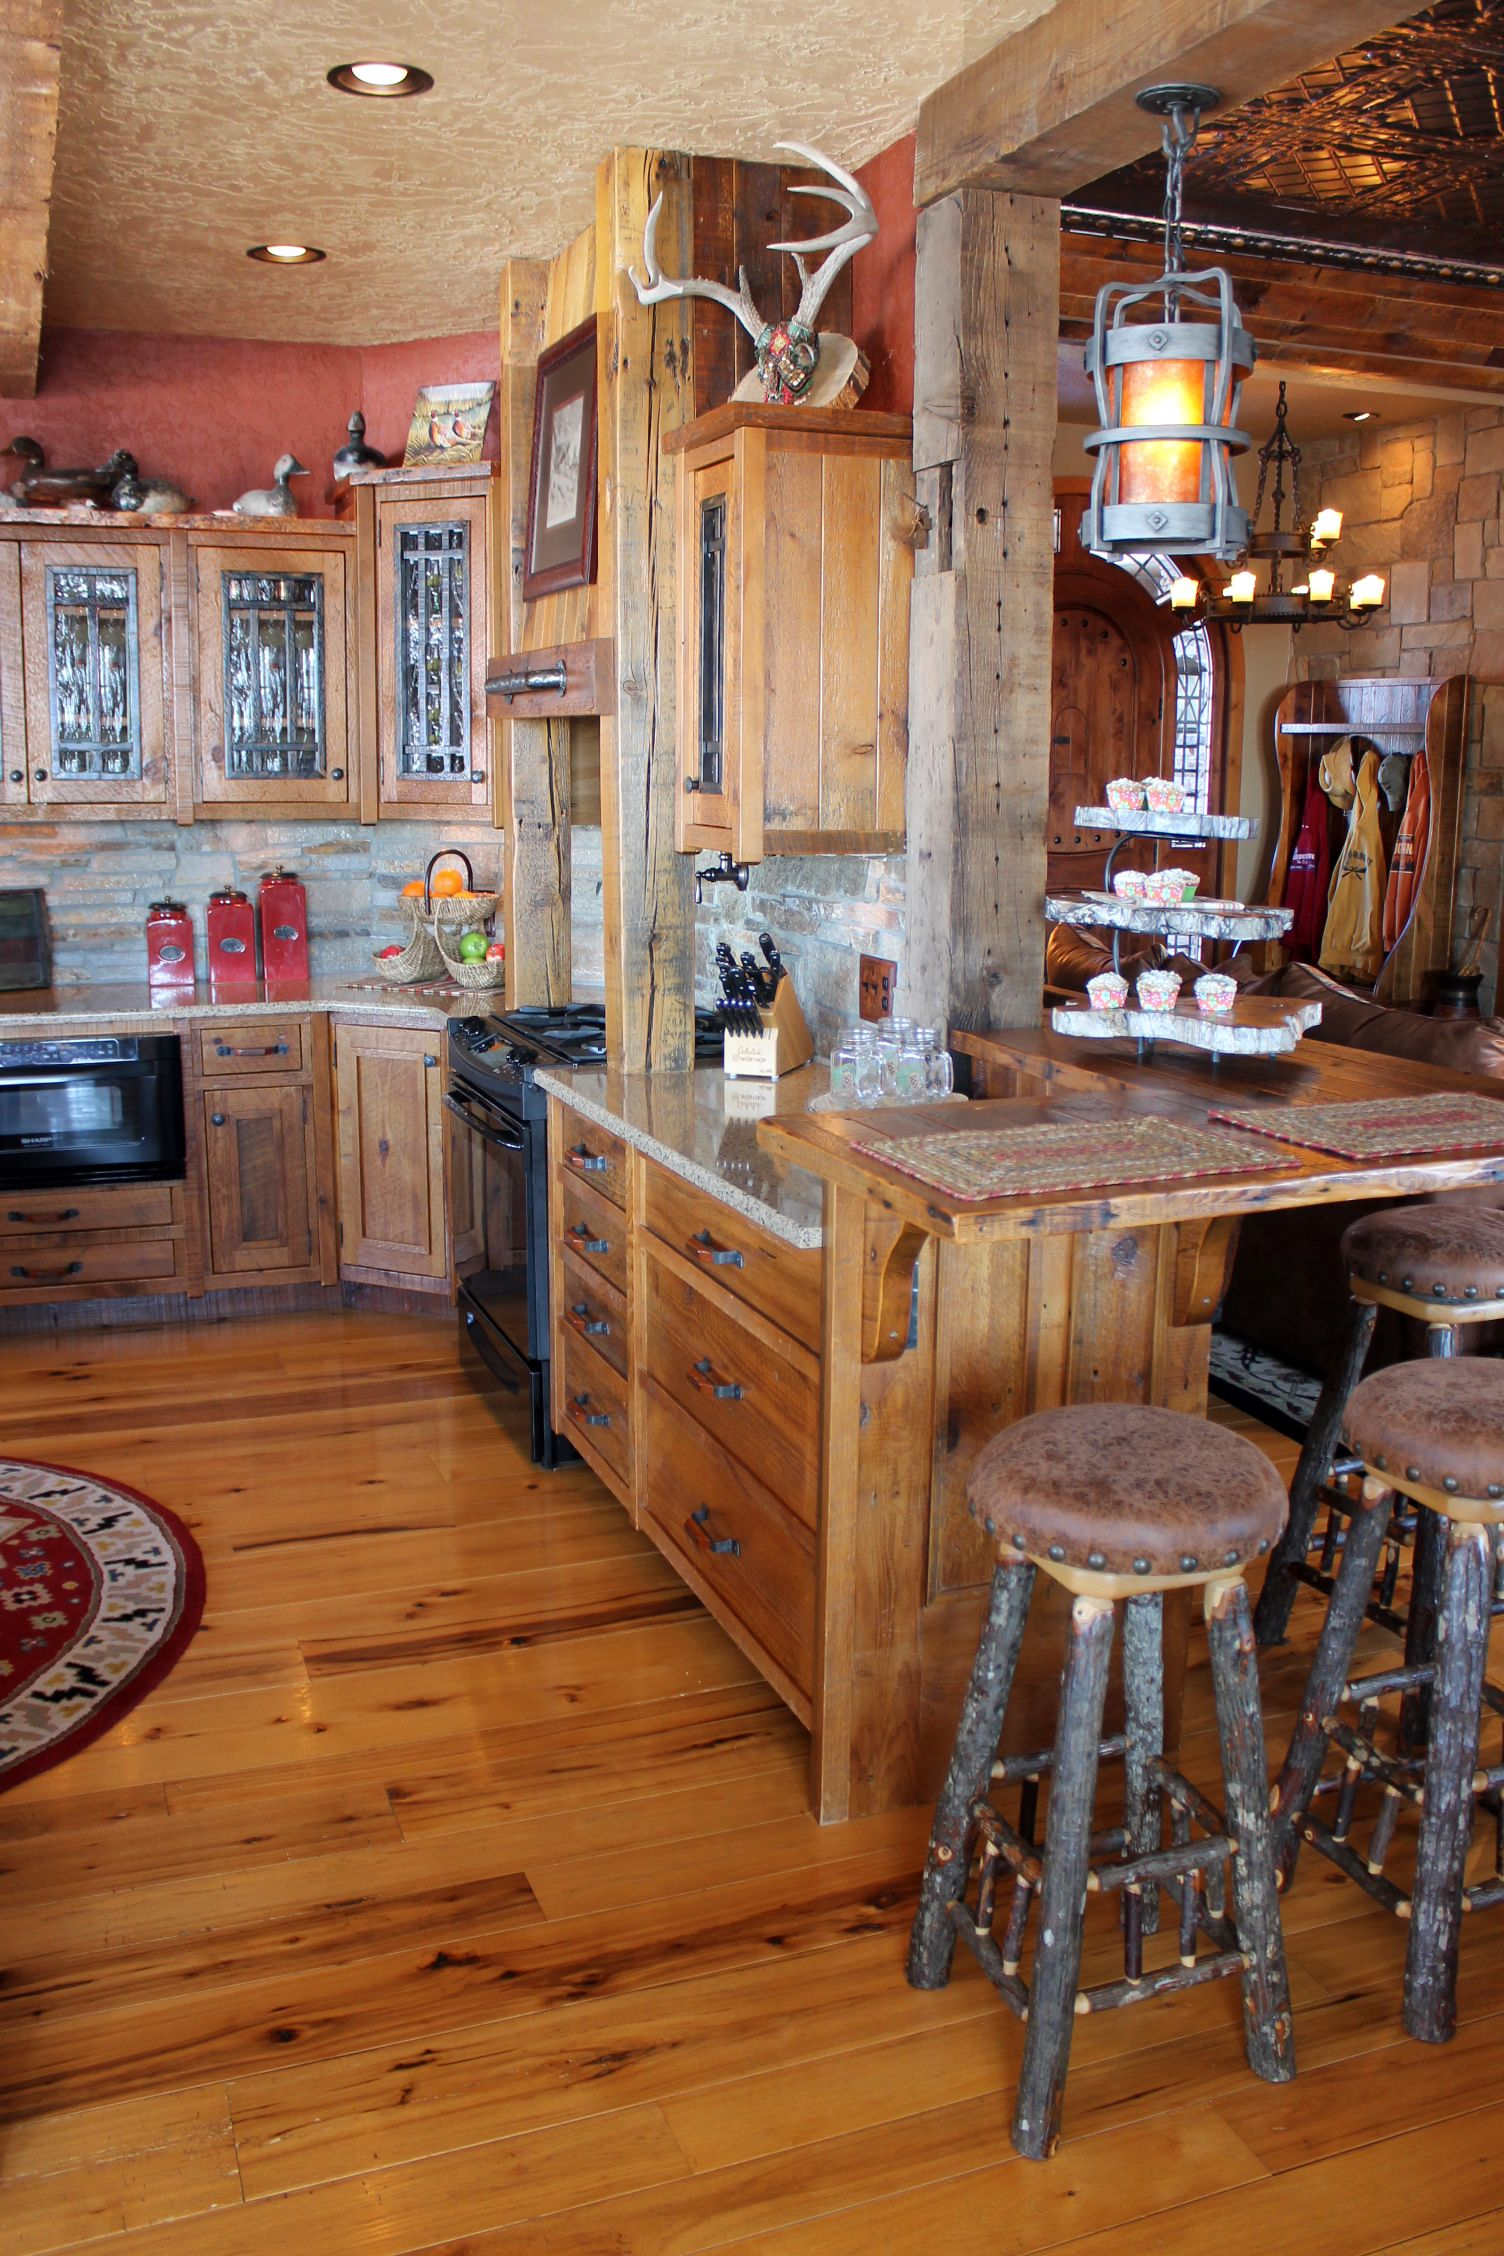 Rustic Reclaimed Barnwood Custom Kitchen Cabinets Wrought Iron Hardware Roughing It In Style De Reclaimed Barn Wood Custom Kitchen Cabinets Kitchen Interior